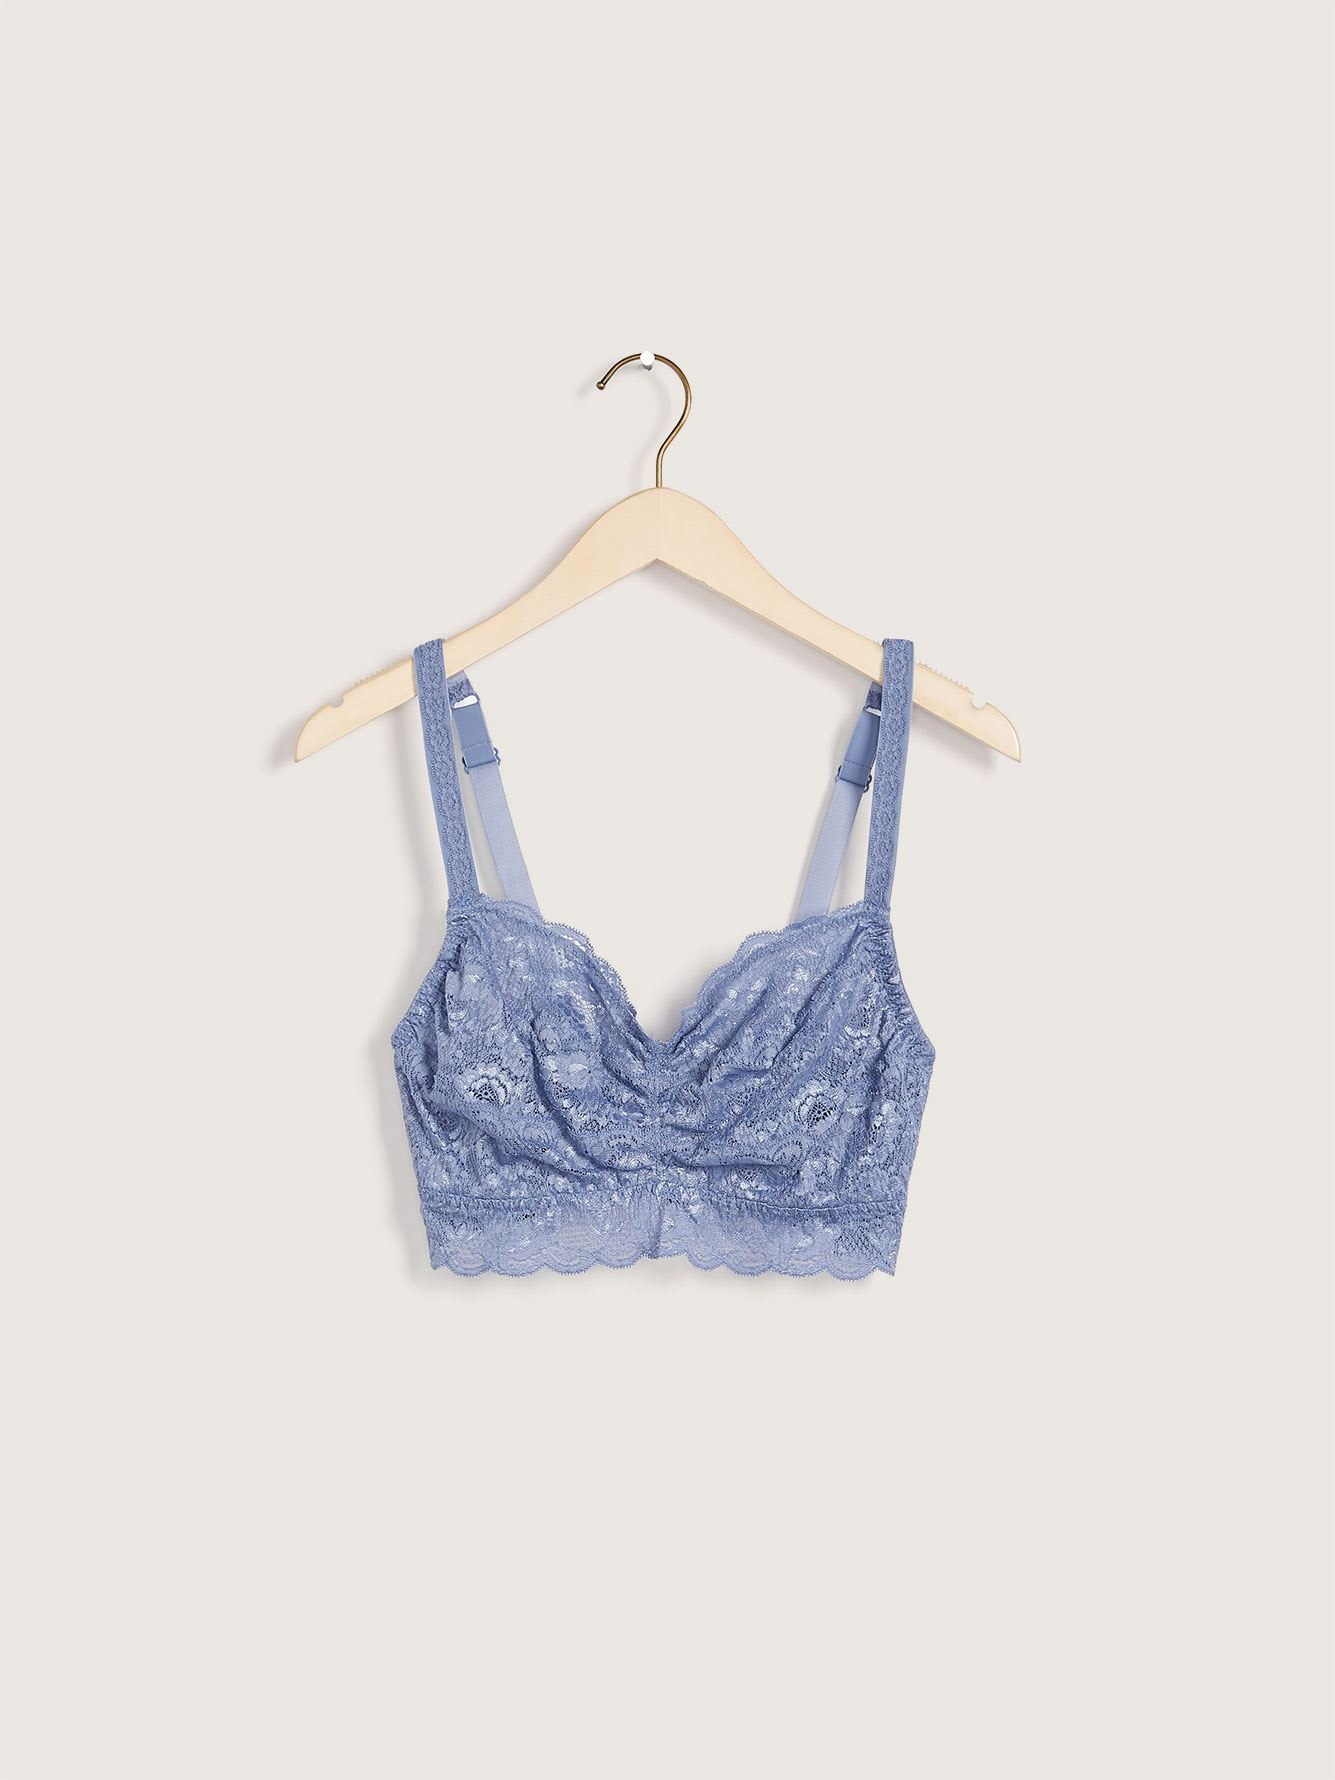 Never Say Never Lace Bralette - Cosabella